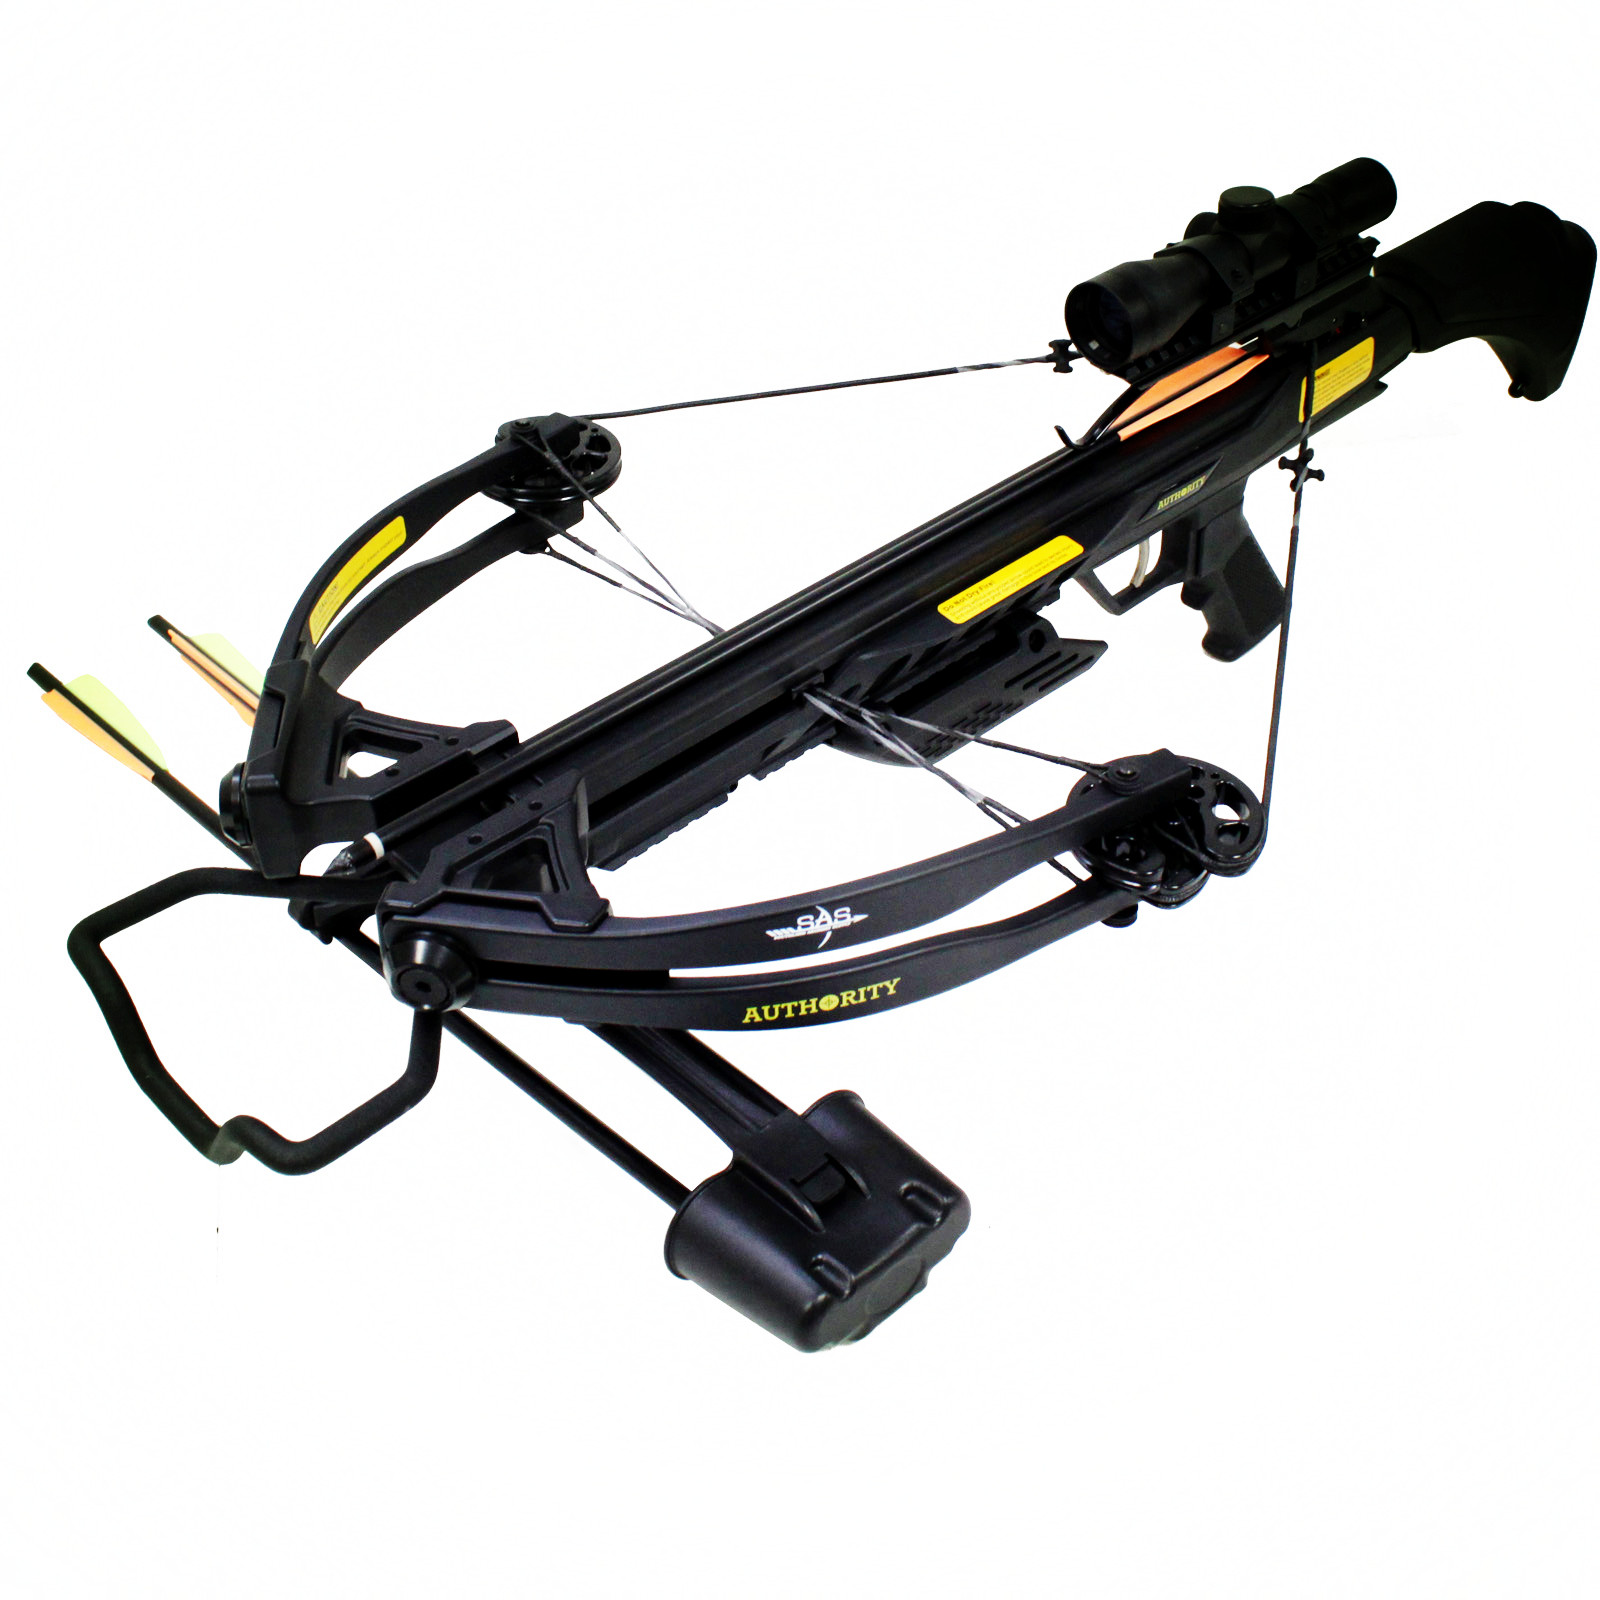 SAS Authoirity 175lbs Compound Crossbow Package Black by SAS